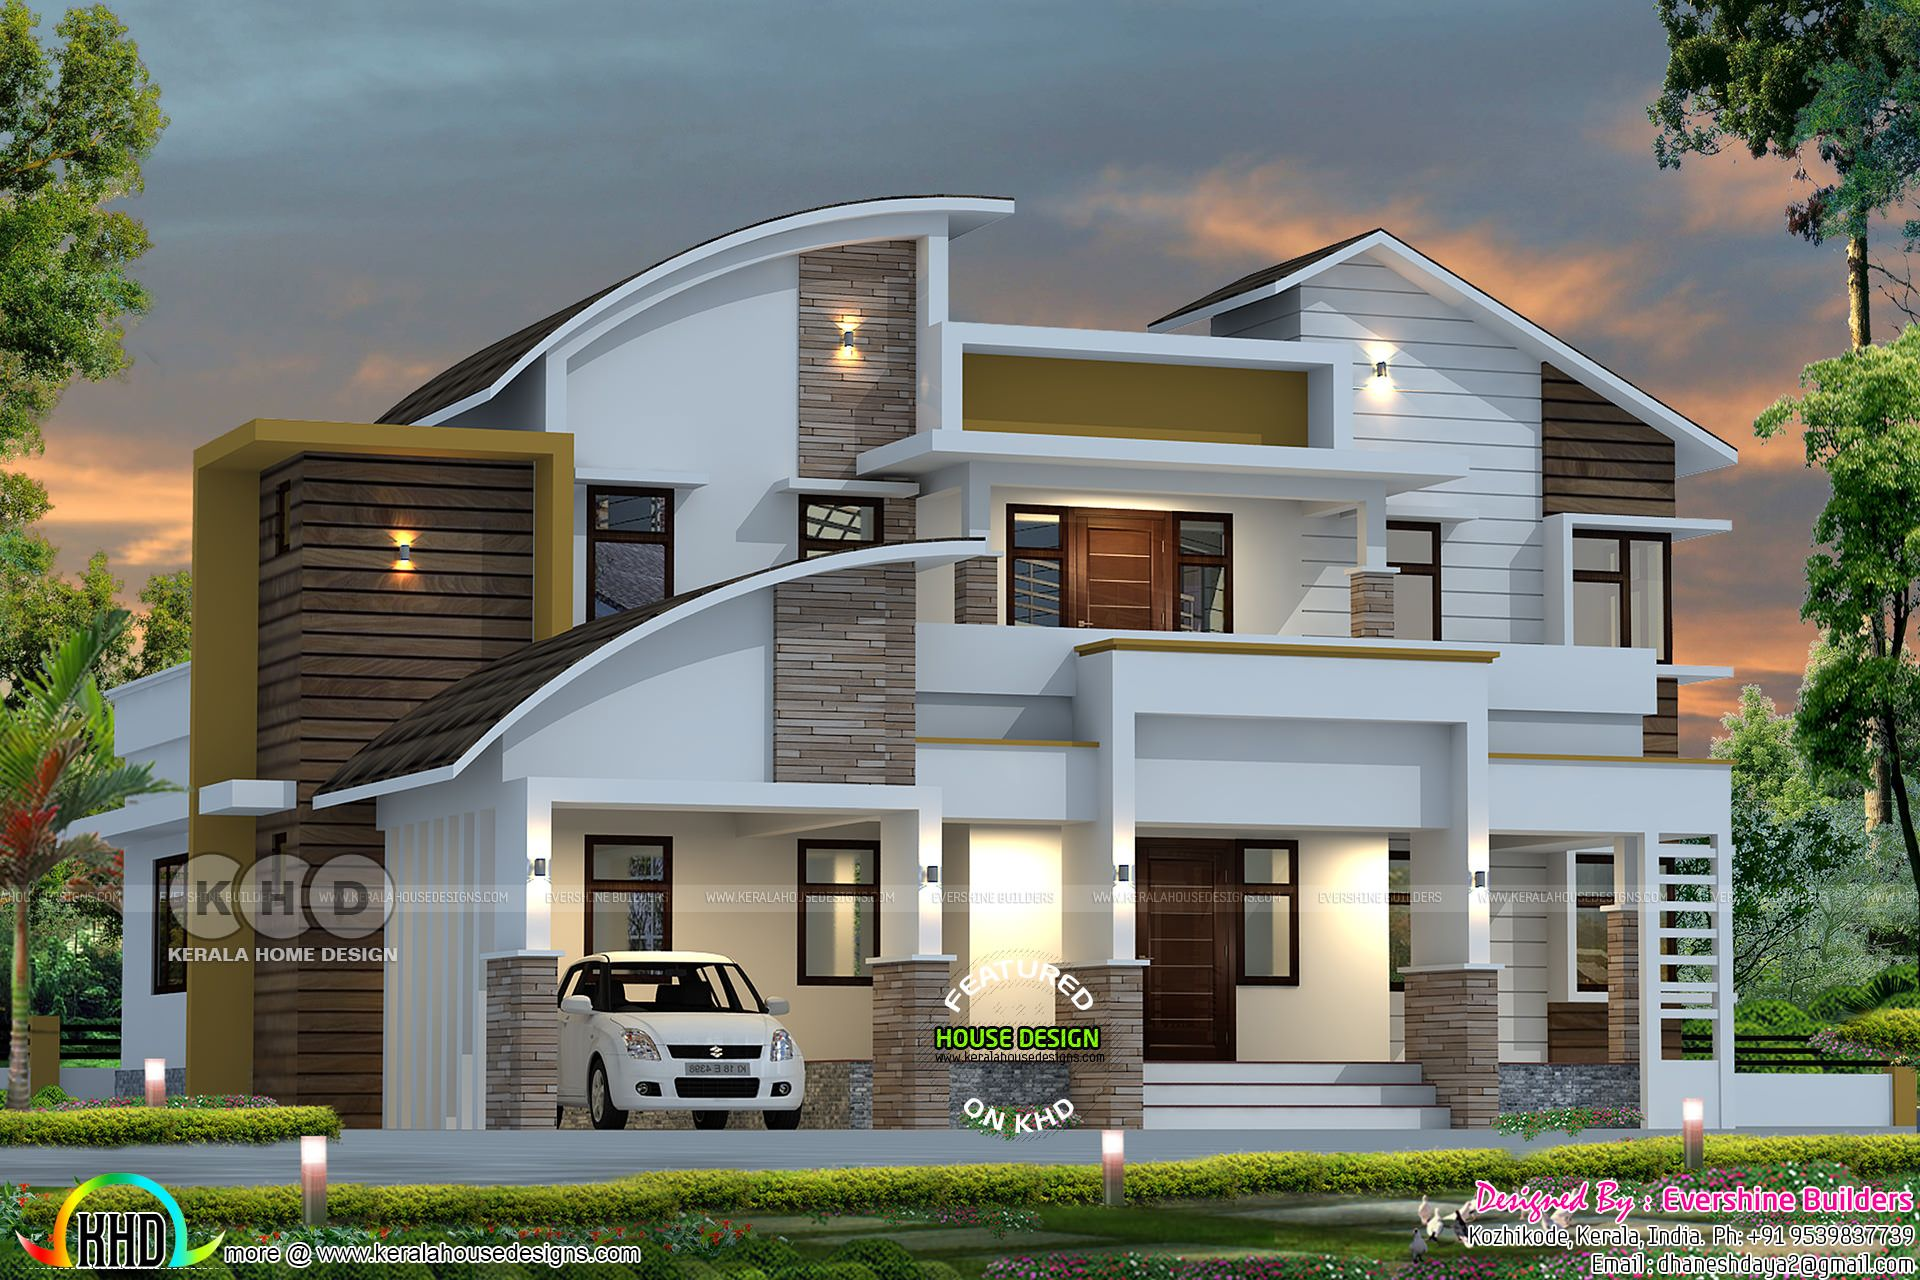 4 Bedroom Modern Contemporary Style 2550 Sq Ft Home Plan Kerala House Design Contemporary House Design Duplex House Design